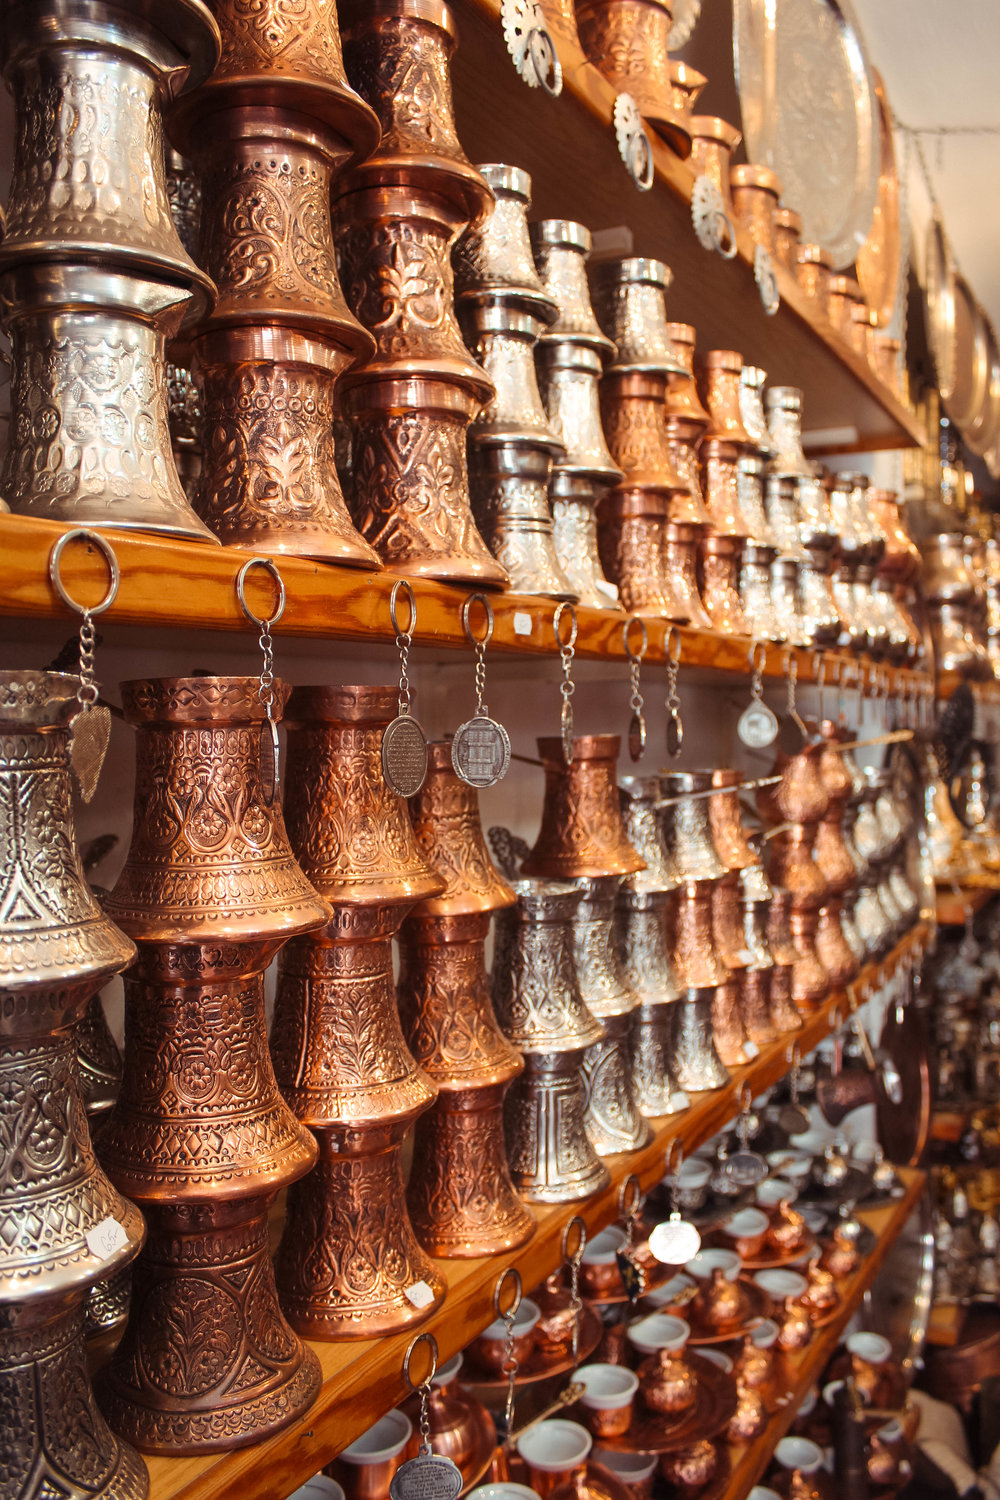 A shop filled with handmade Bosnian coffee sets and cookware. Many side streets in Baščaršija are lined with shops run by families of makers